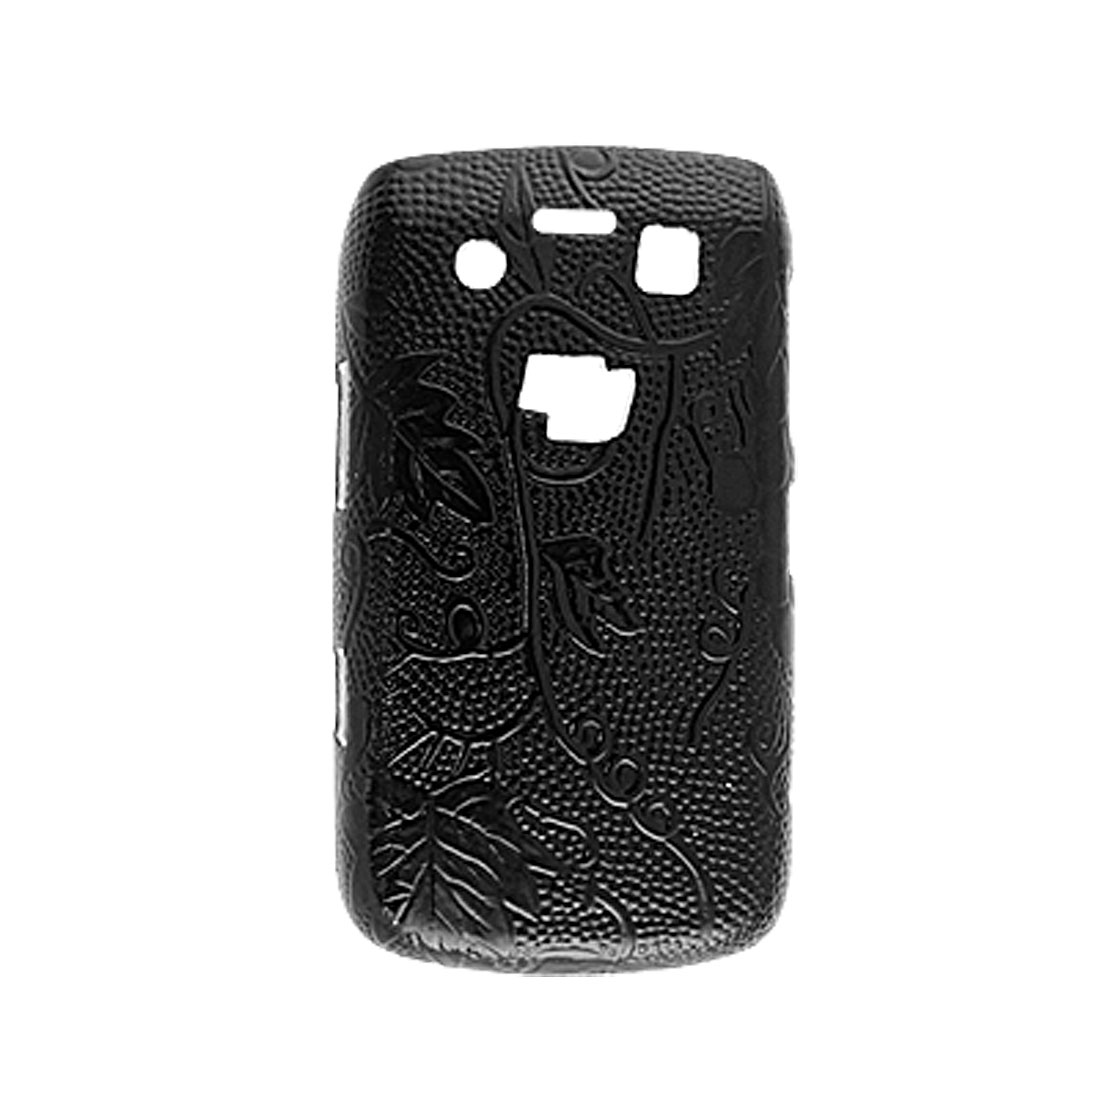 Grape Black Hard Plastic Faux Leather Coated Back Case for Blackberry 9700